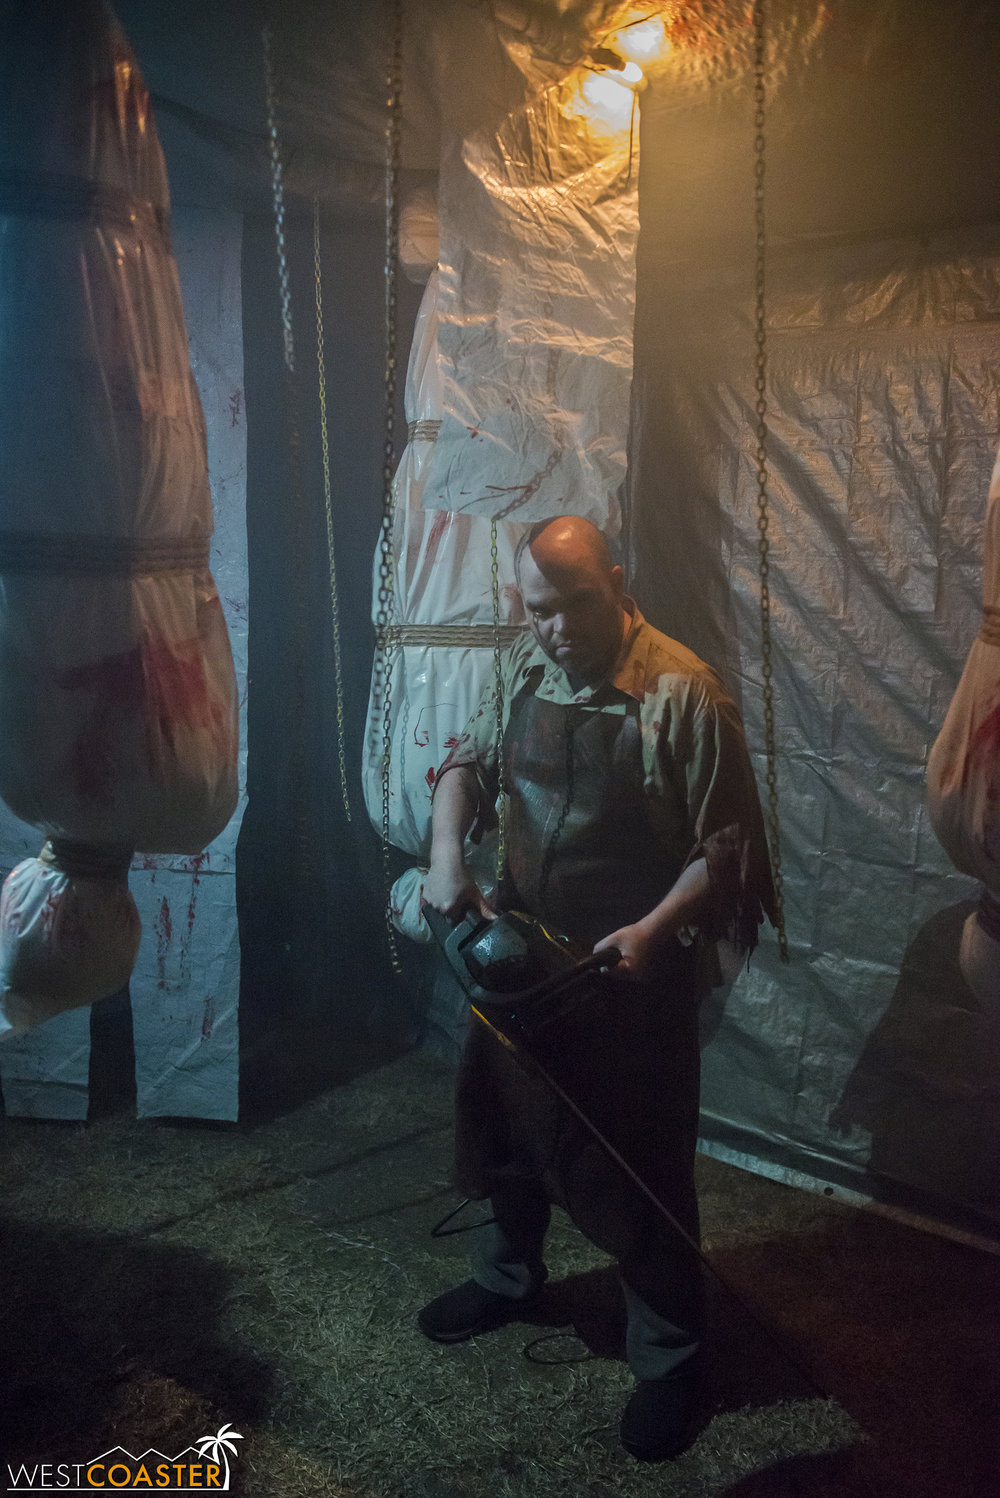 Impressively, the entire maze is built directly on the lawn, rather than a constructed platform, which certainly saves construction time.